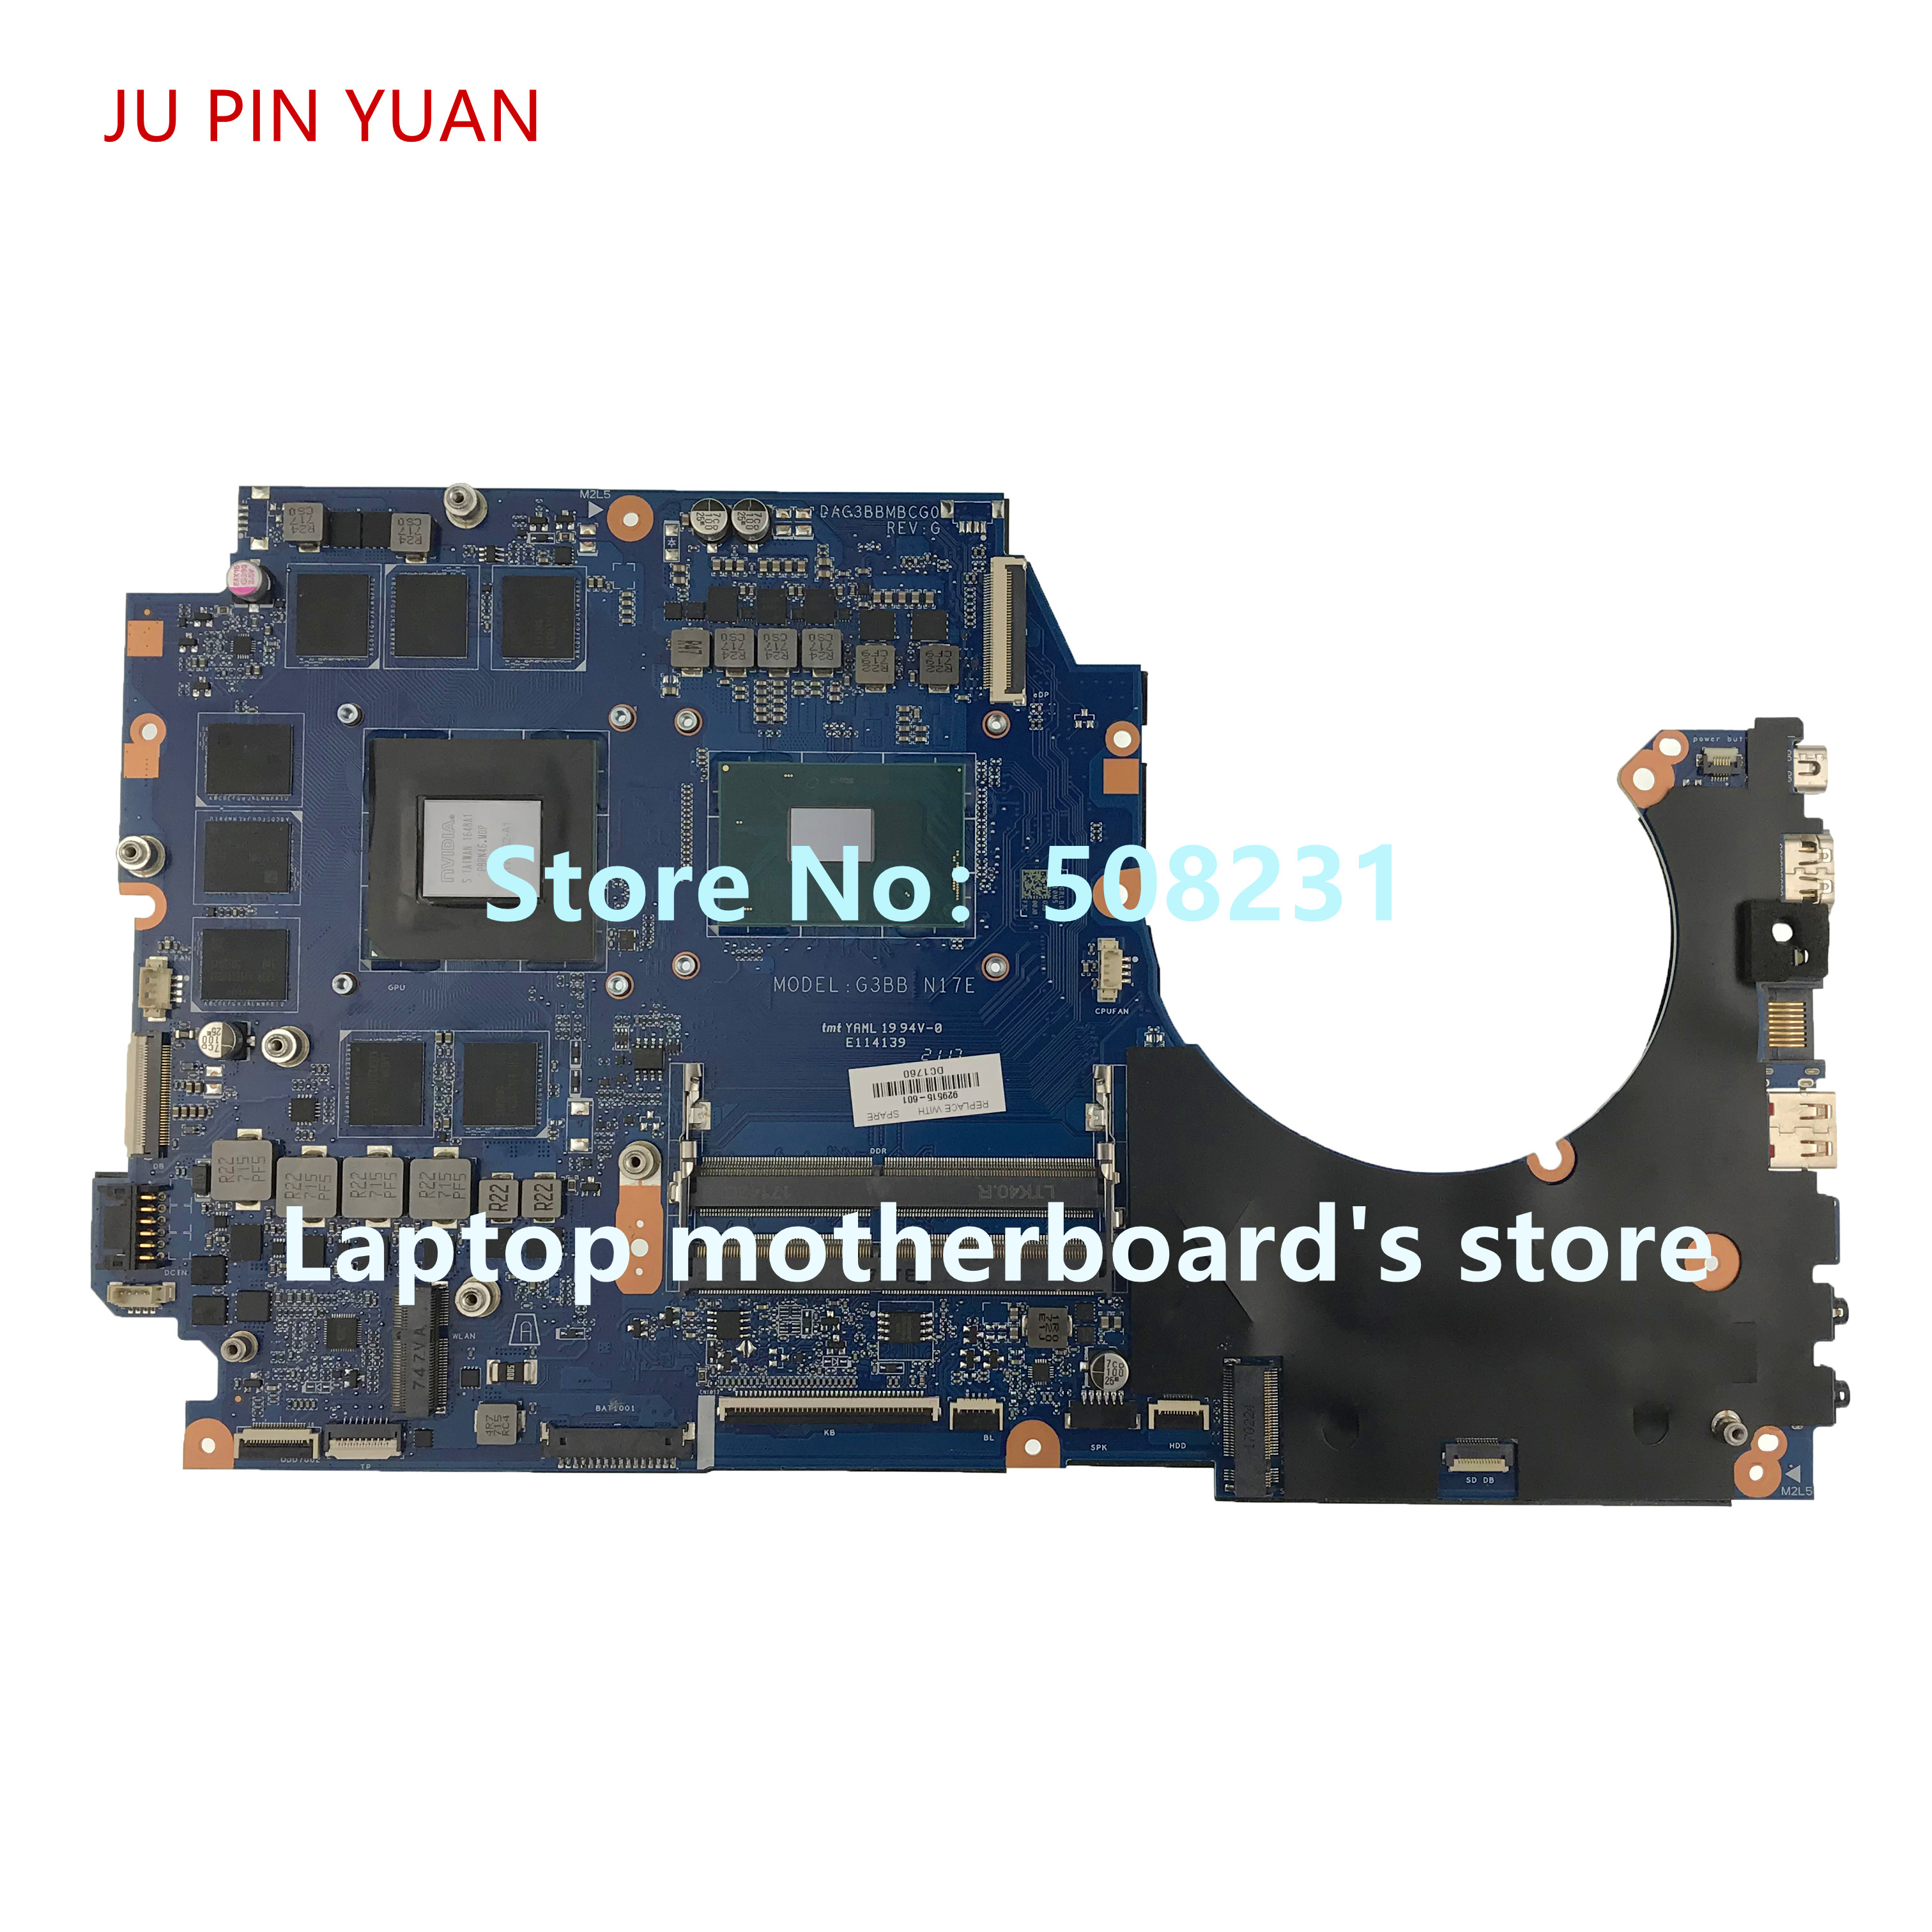 JU PIN YUAN 929515 601 G3BB DAG3BBMBCG0 motherboard For OMEN by HP Laptop 17 AN Notebook PC GTX1070 8GB i7 7700HQ fully Tested